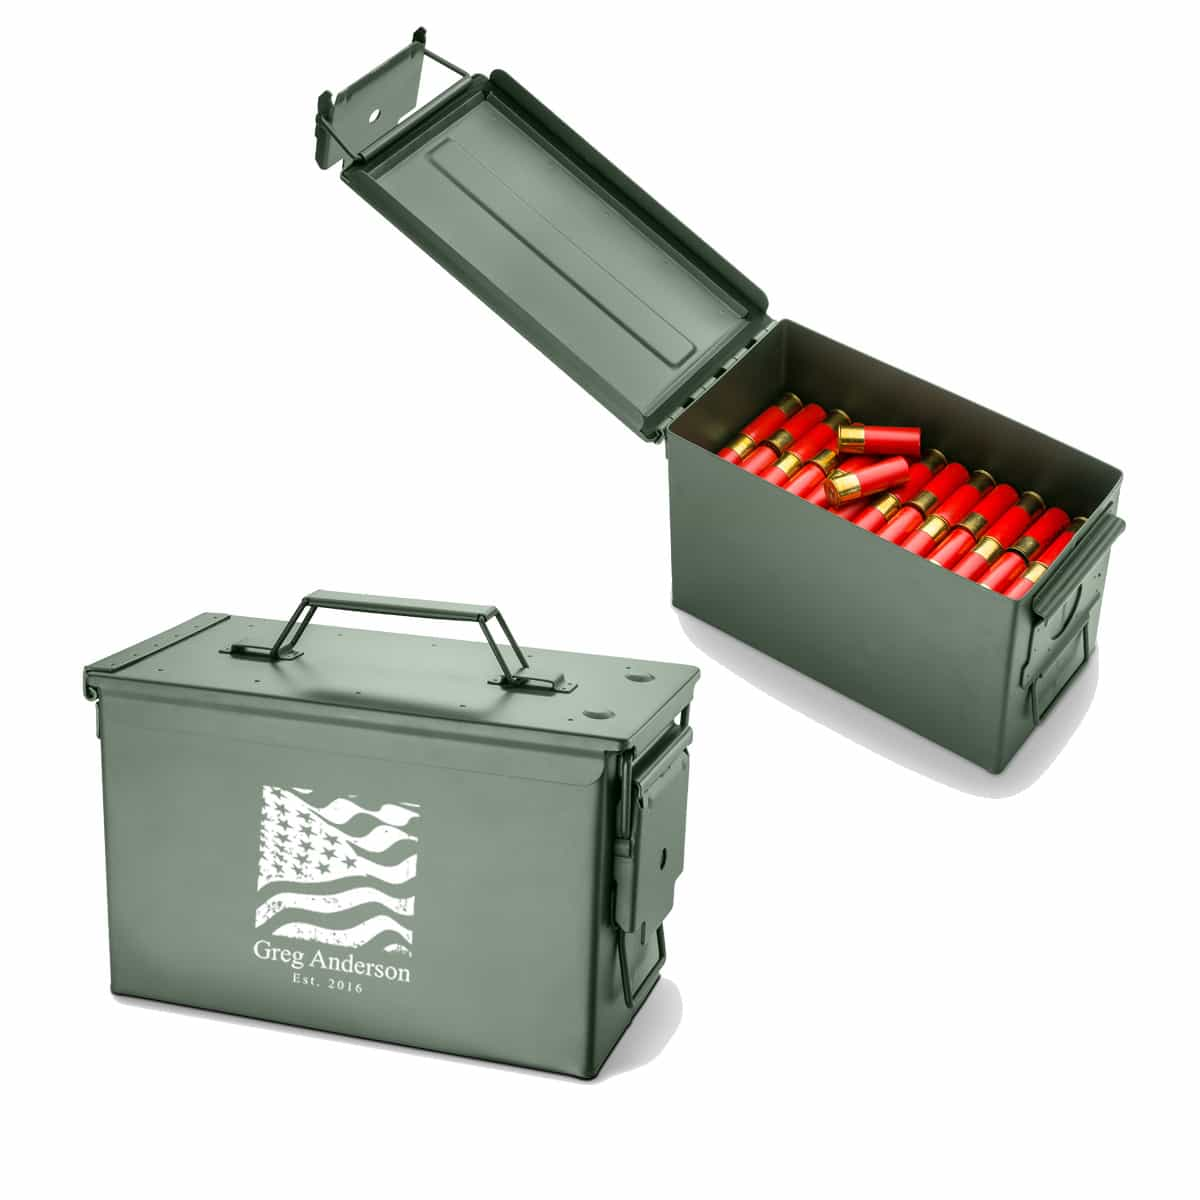 personalized metal ammo box - Christmas Gifts For Outdoorsmen